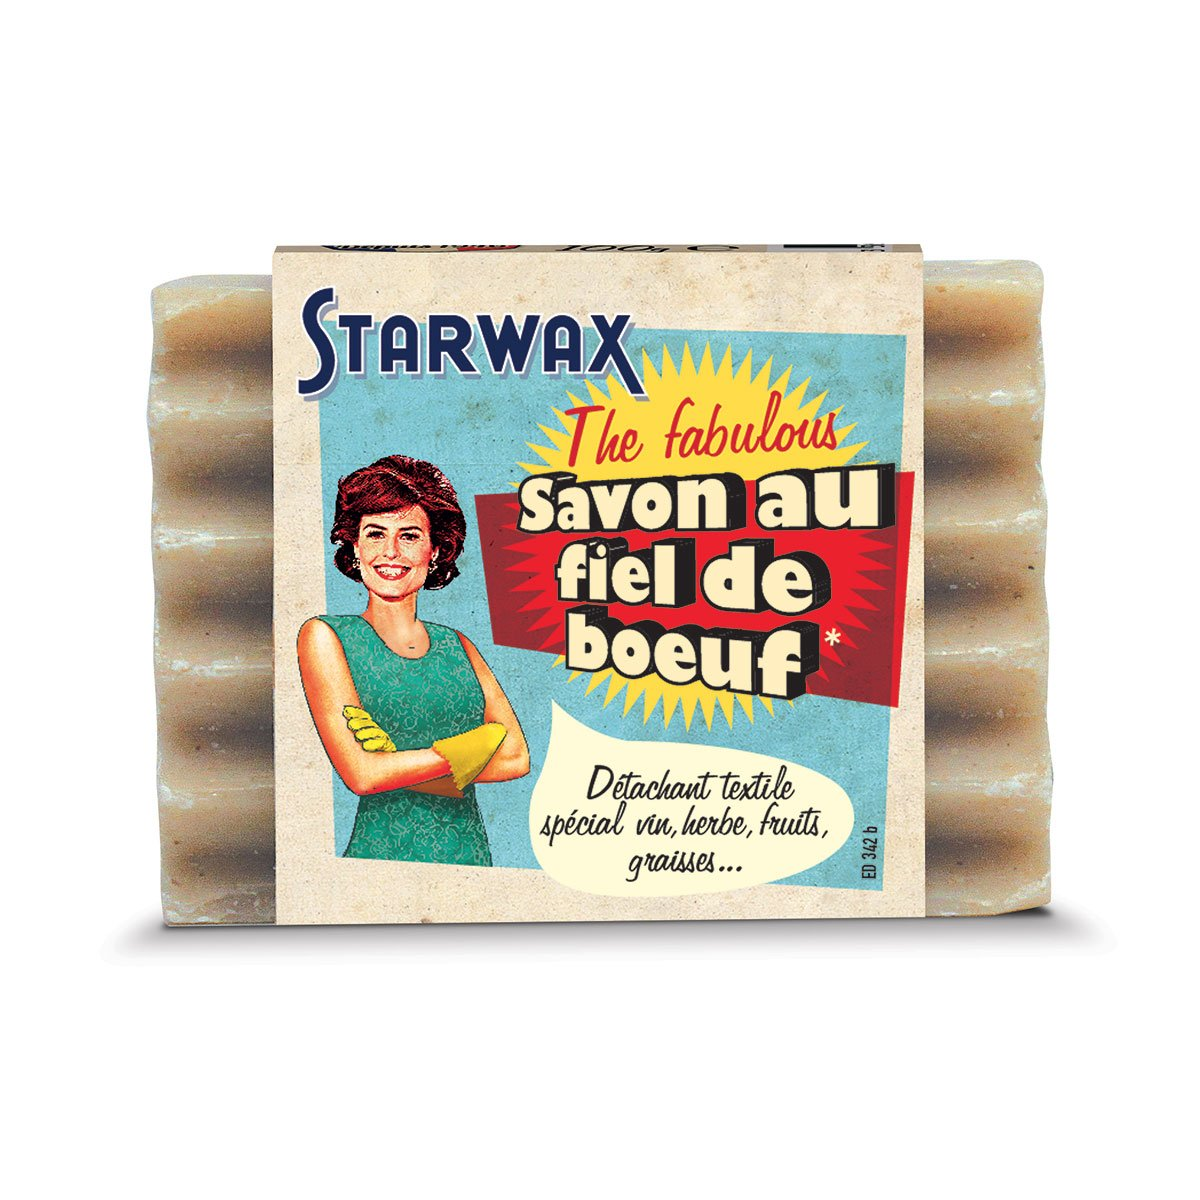 Savon détachant au fiel de boeuf - Starwax The Fabulous